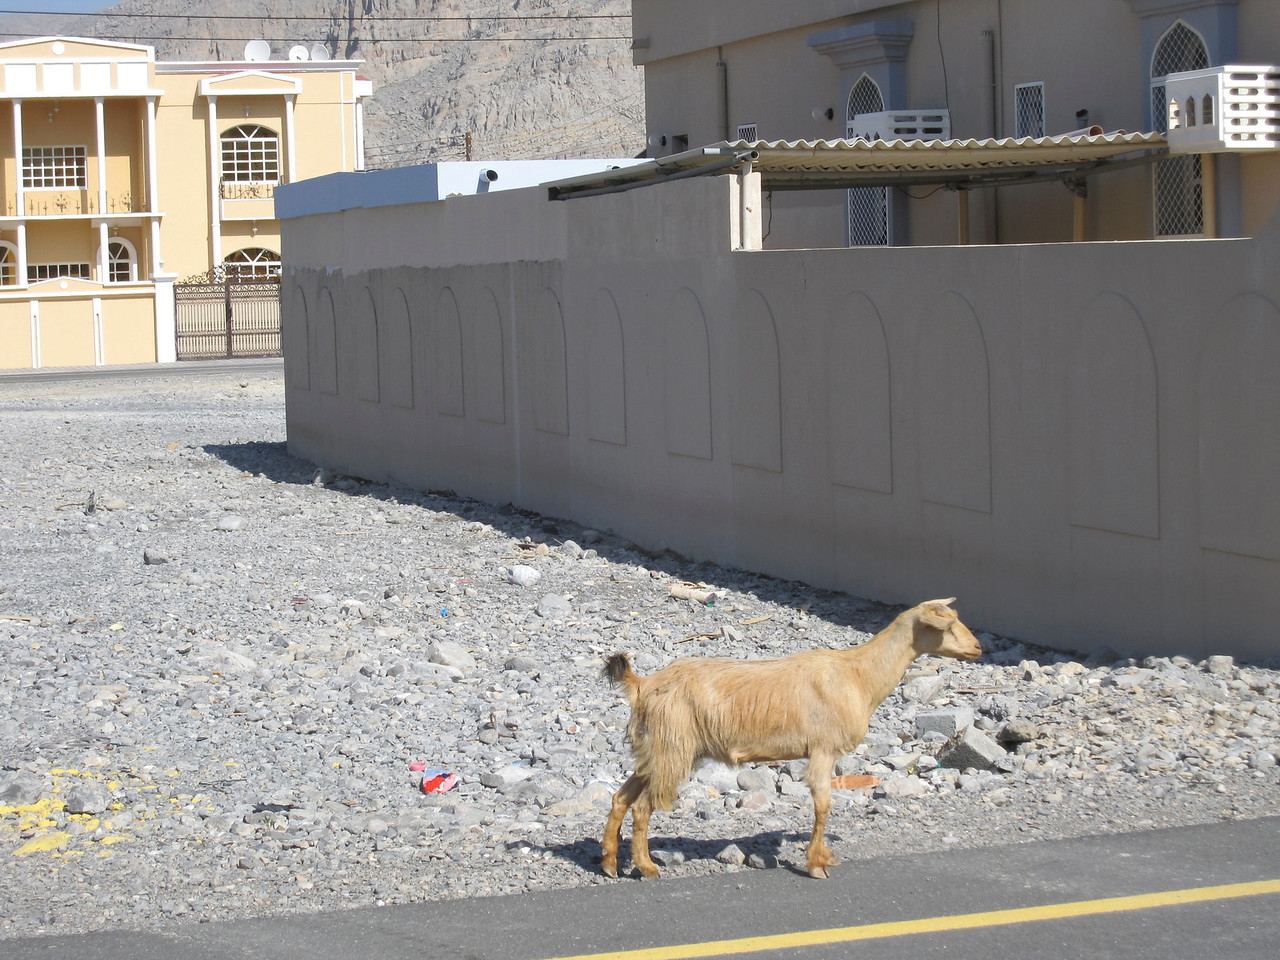 Goat on the street of Muscat, Oman